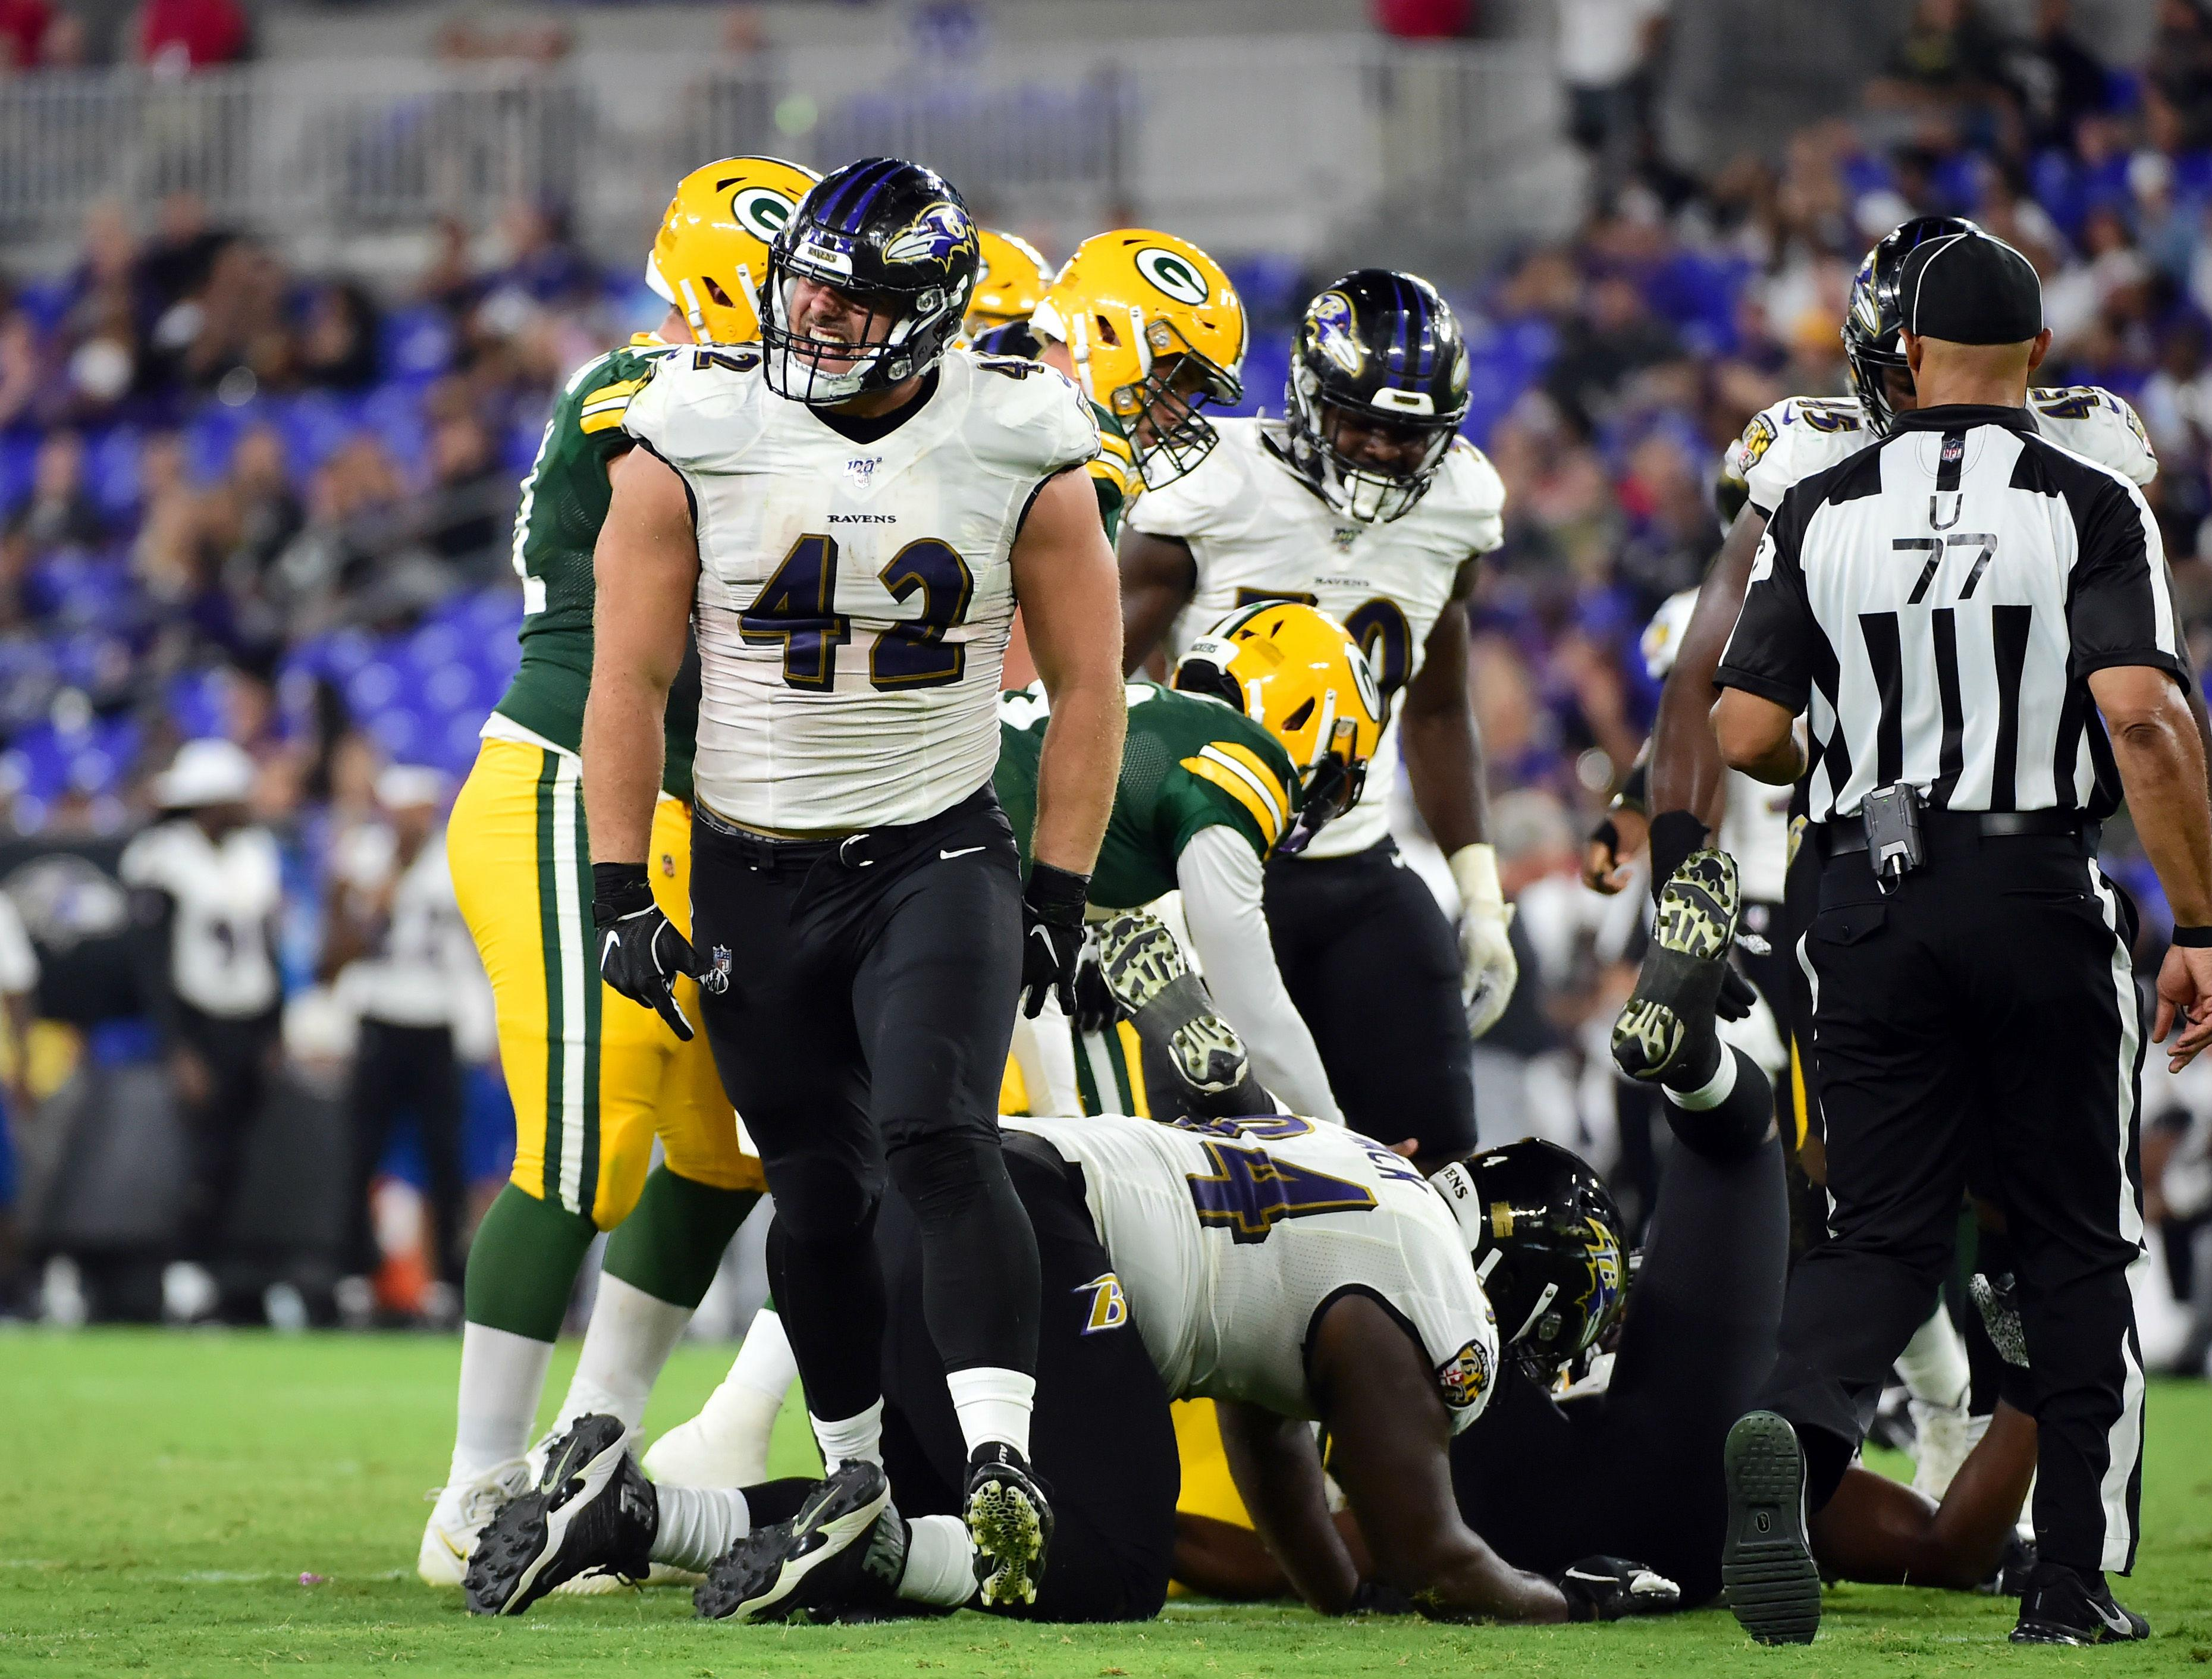 Every team needs a Swiss Army Knife. The Ravens have Patrick Ricard